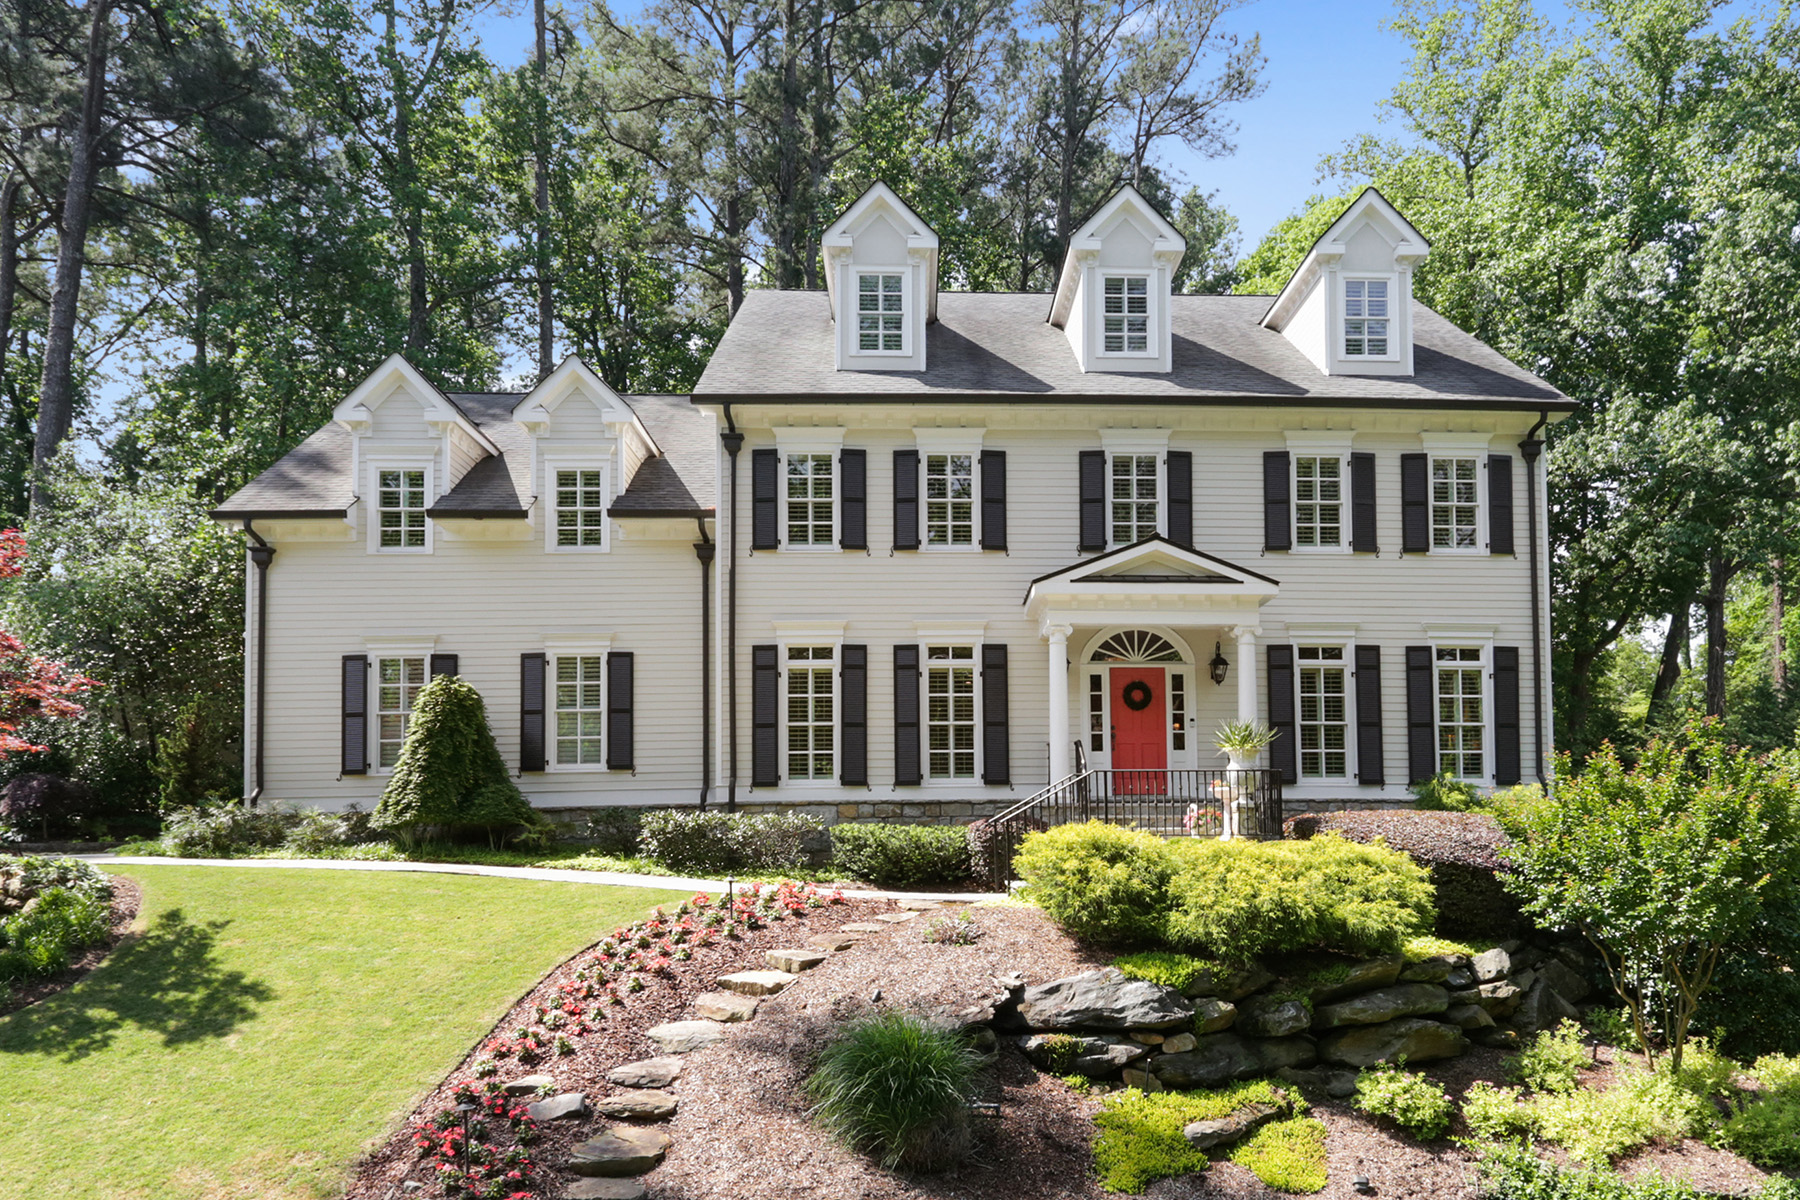 Single Family Home for Sale at Stunning Pine Hills Traditional Home in Sarah Smith Elementary 3116 Towerview Drive Atlanta, Georgia 30324 United States